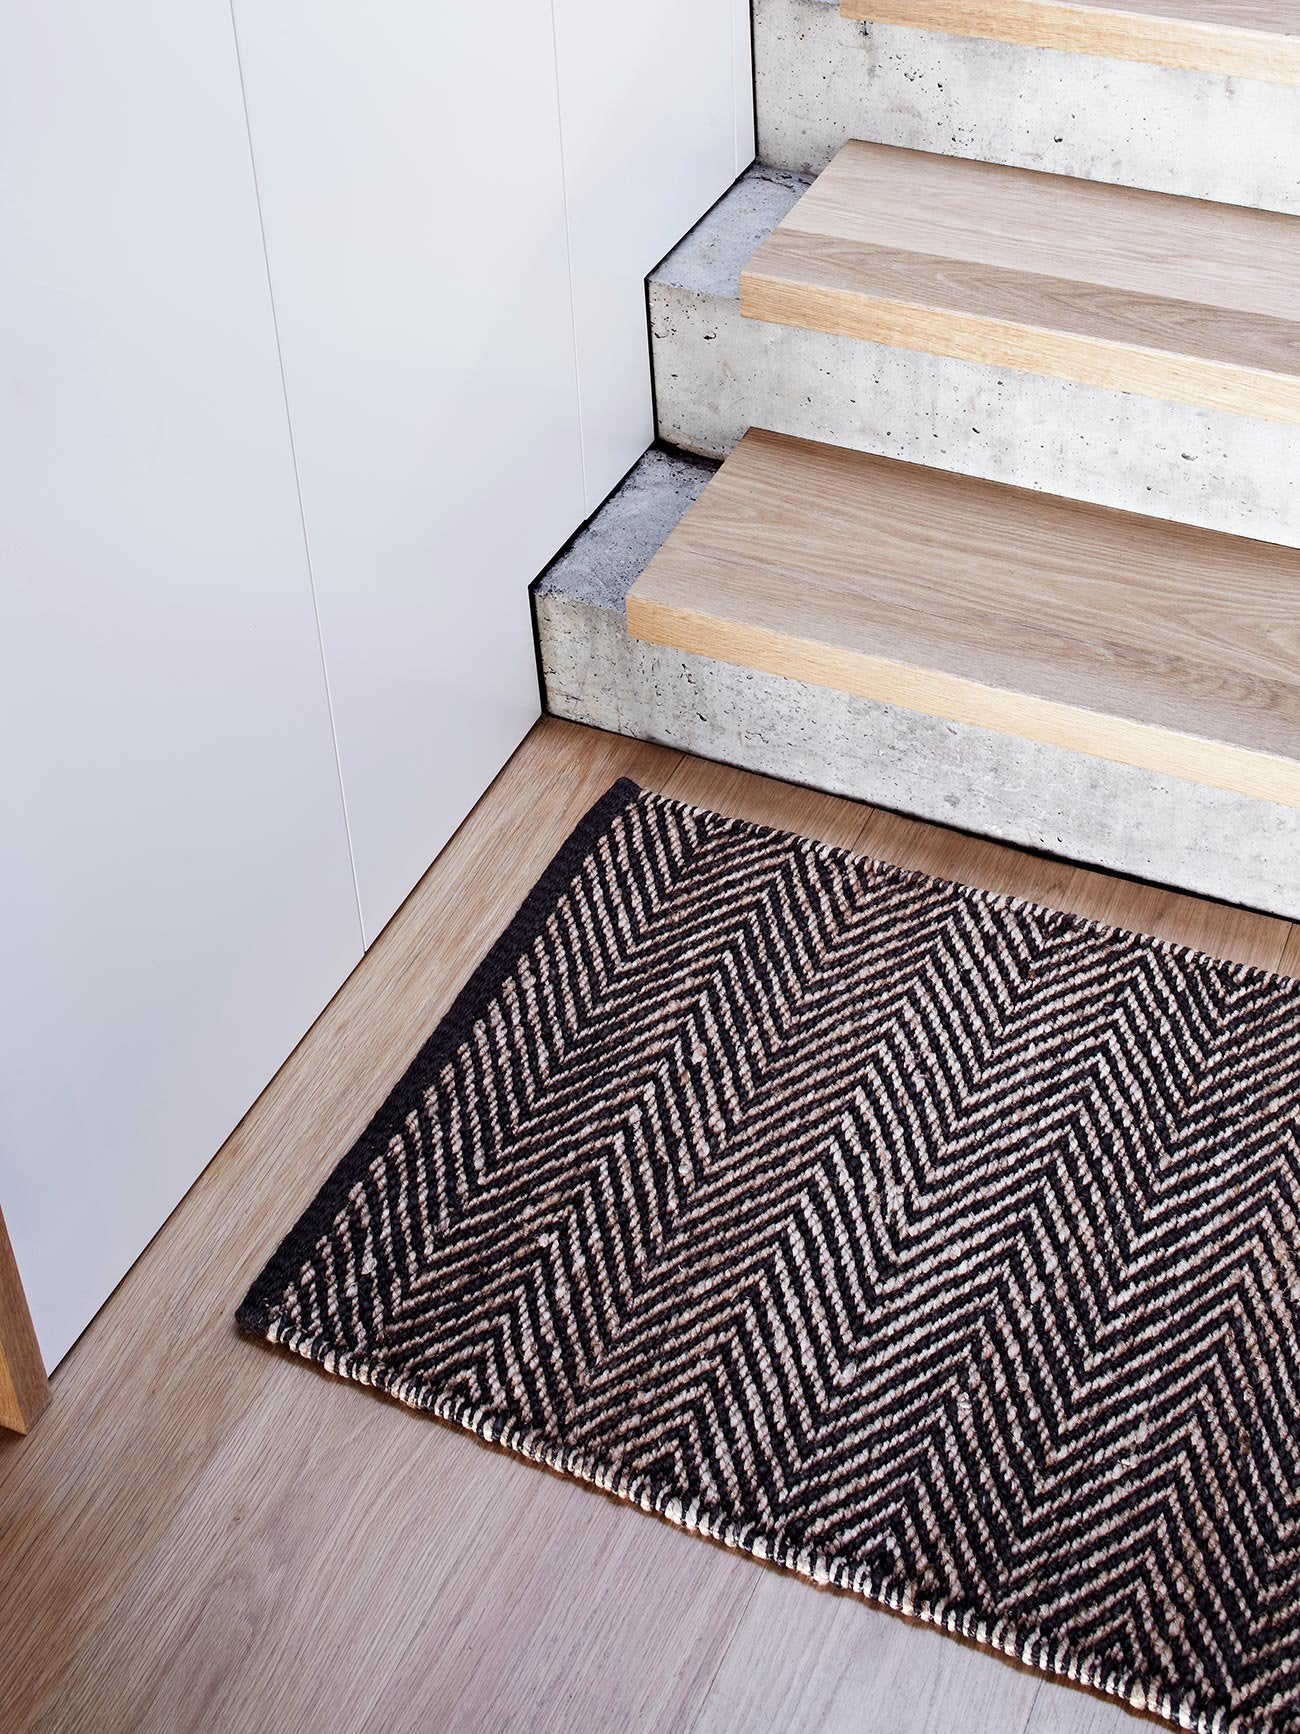 Armadillo Serengeti Entrance Mat - Charcoal & Natural